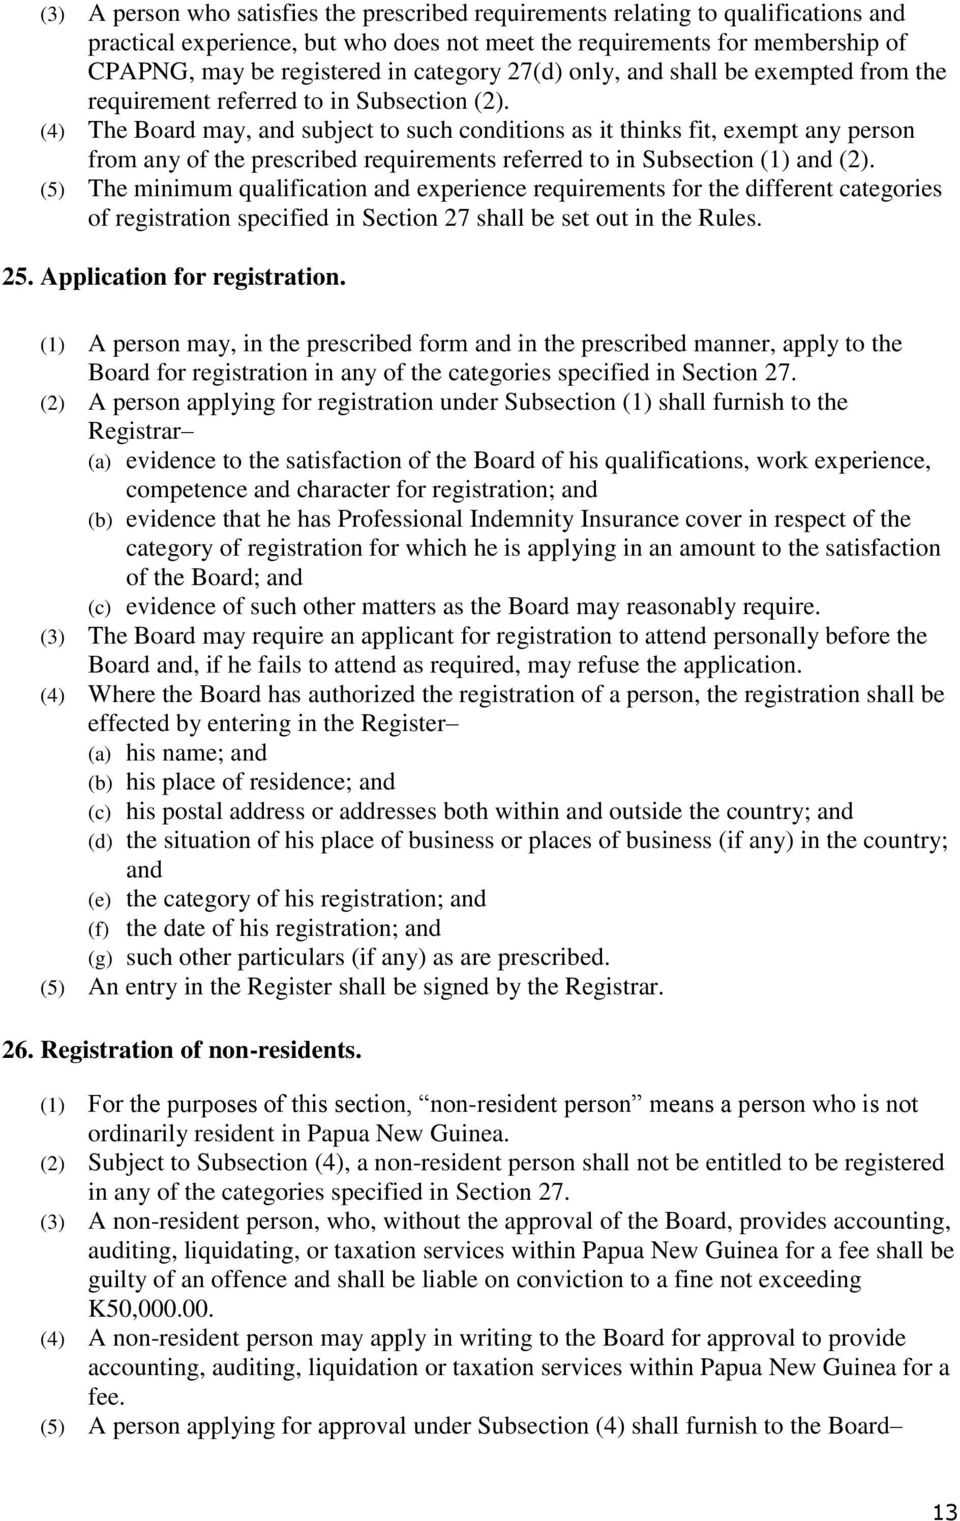 (4) The Board may, and subject to such conditions as it thinks fit, exempt any person from any of the prescribed requirements referred to in Subsection (1) and (2).